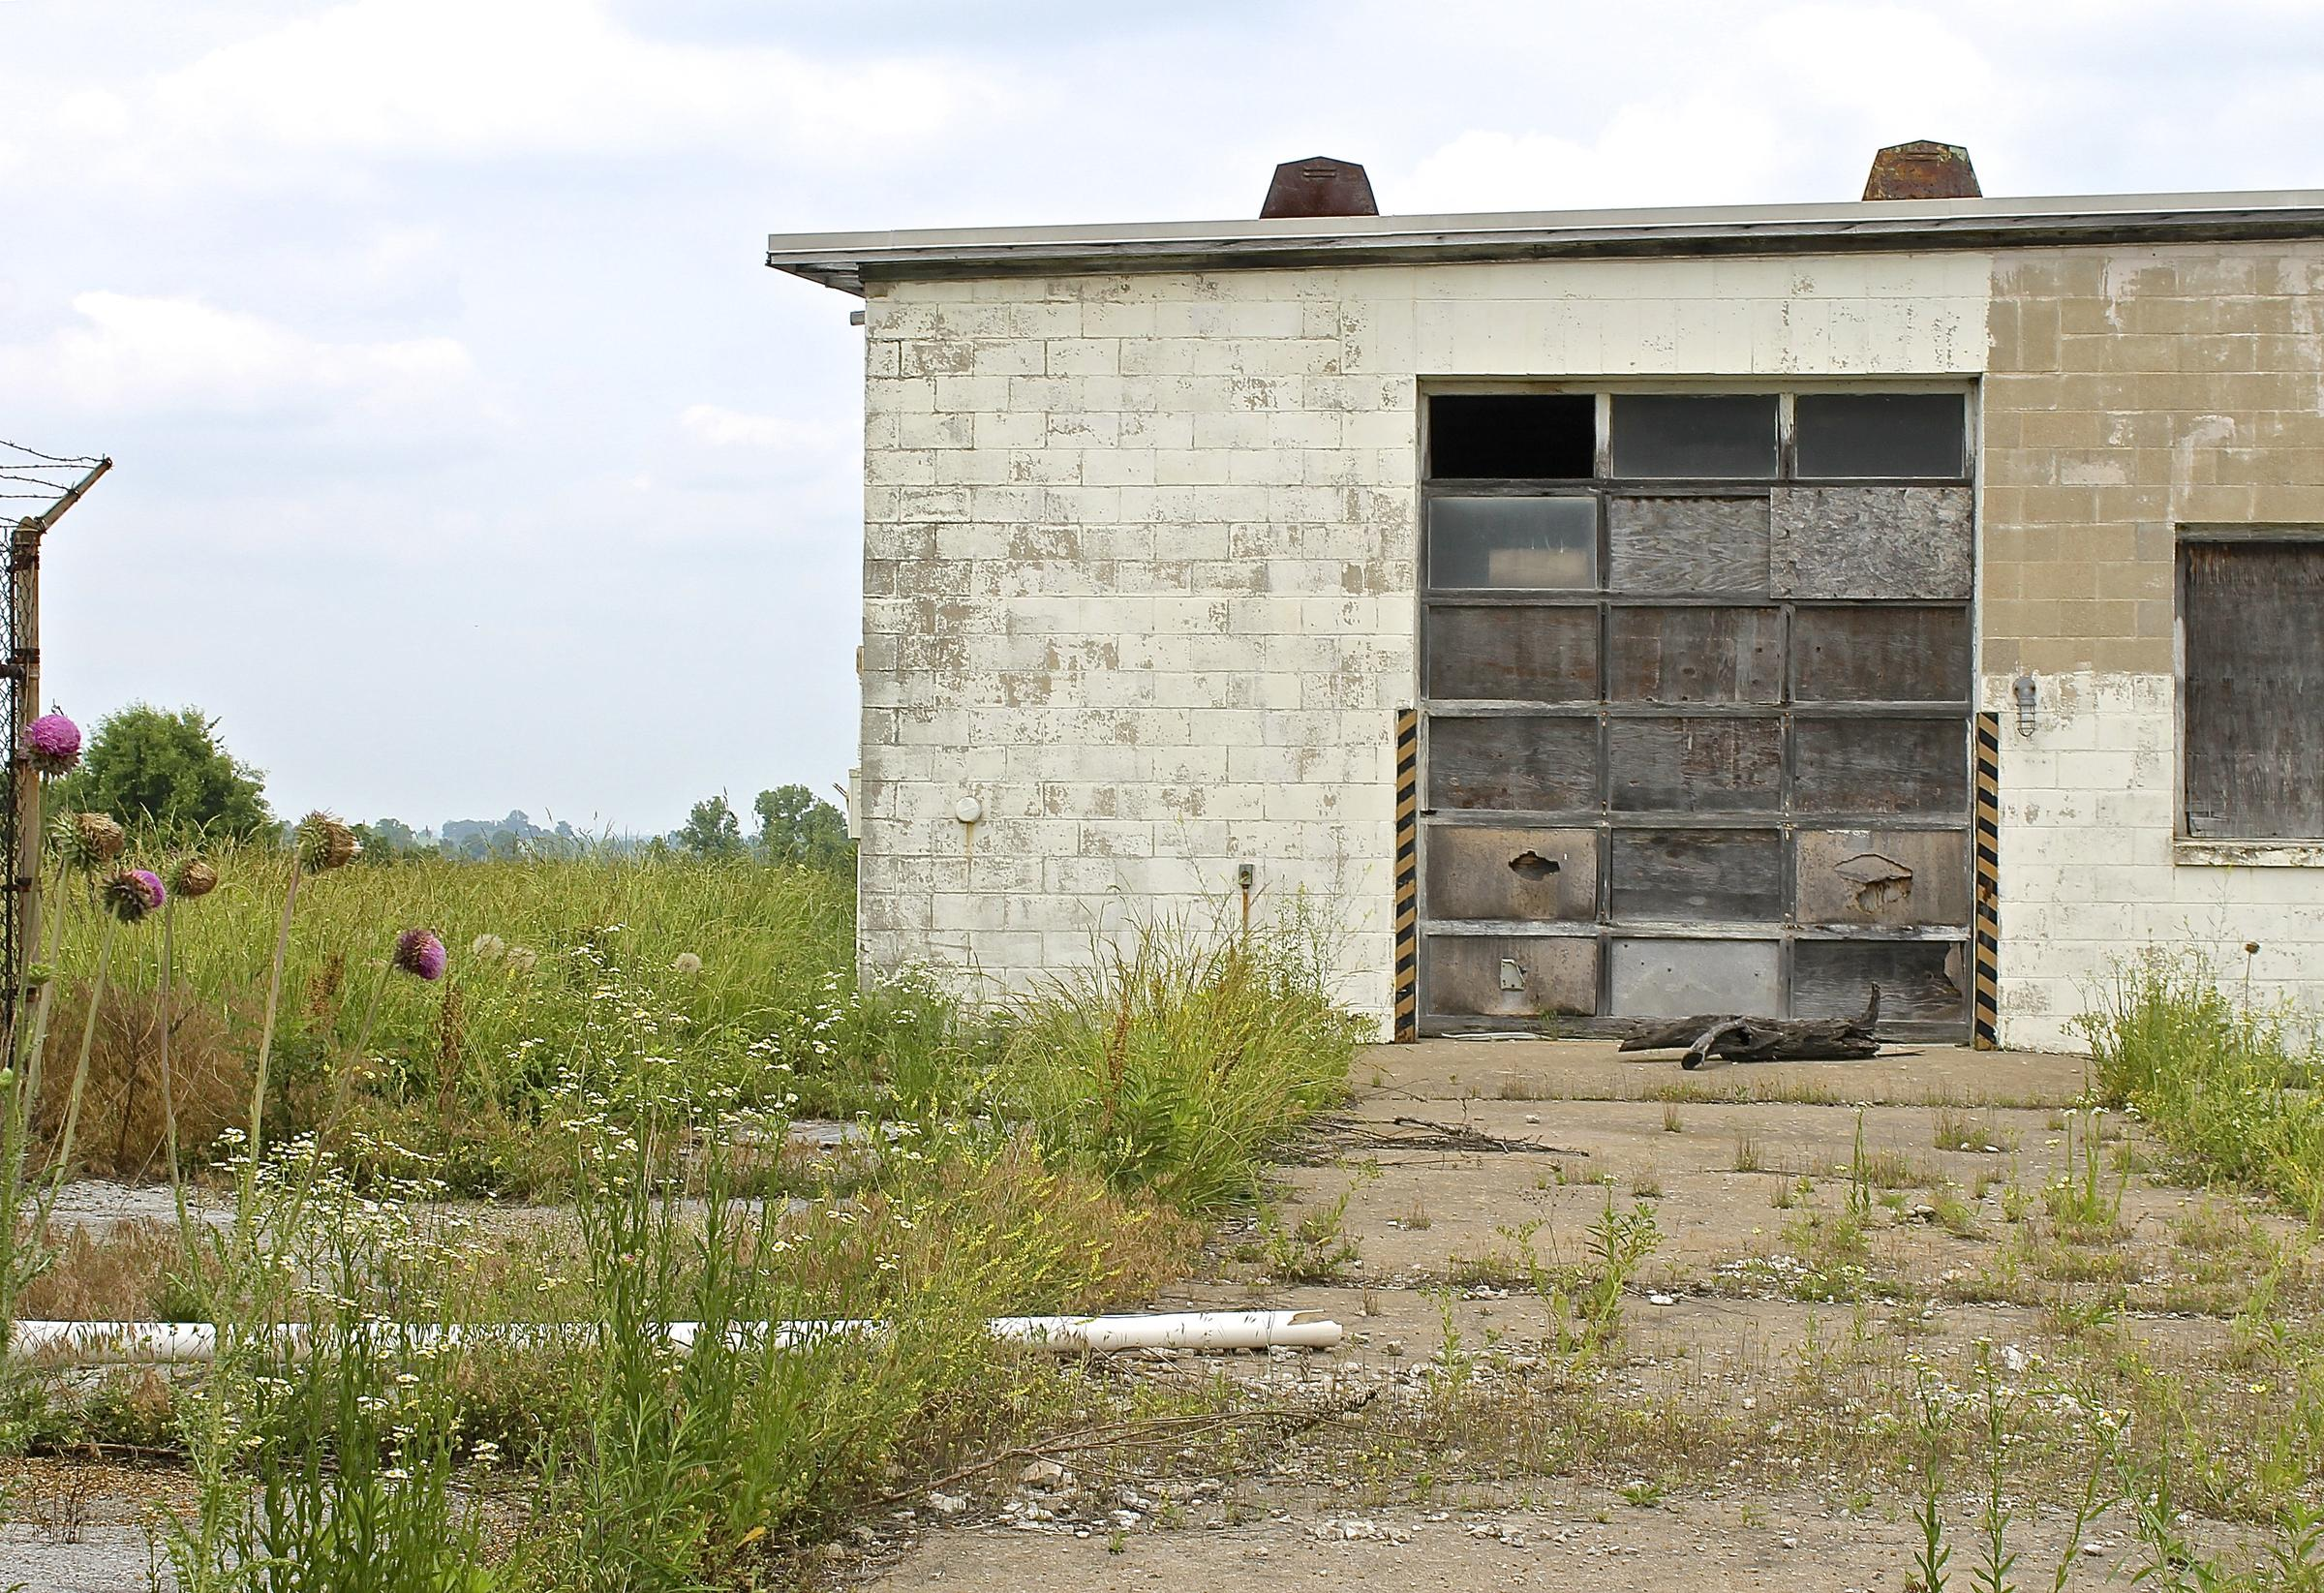 Decommissioned Missile Base Properties For Sale Nike Missile Launch Site In Southern Illinois Can Be Yours For The